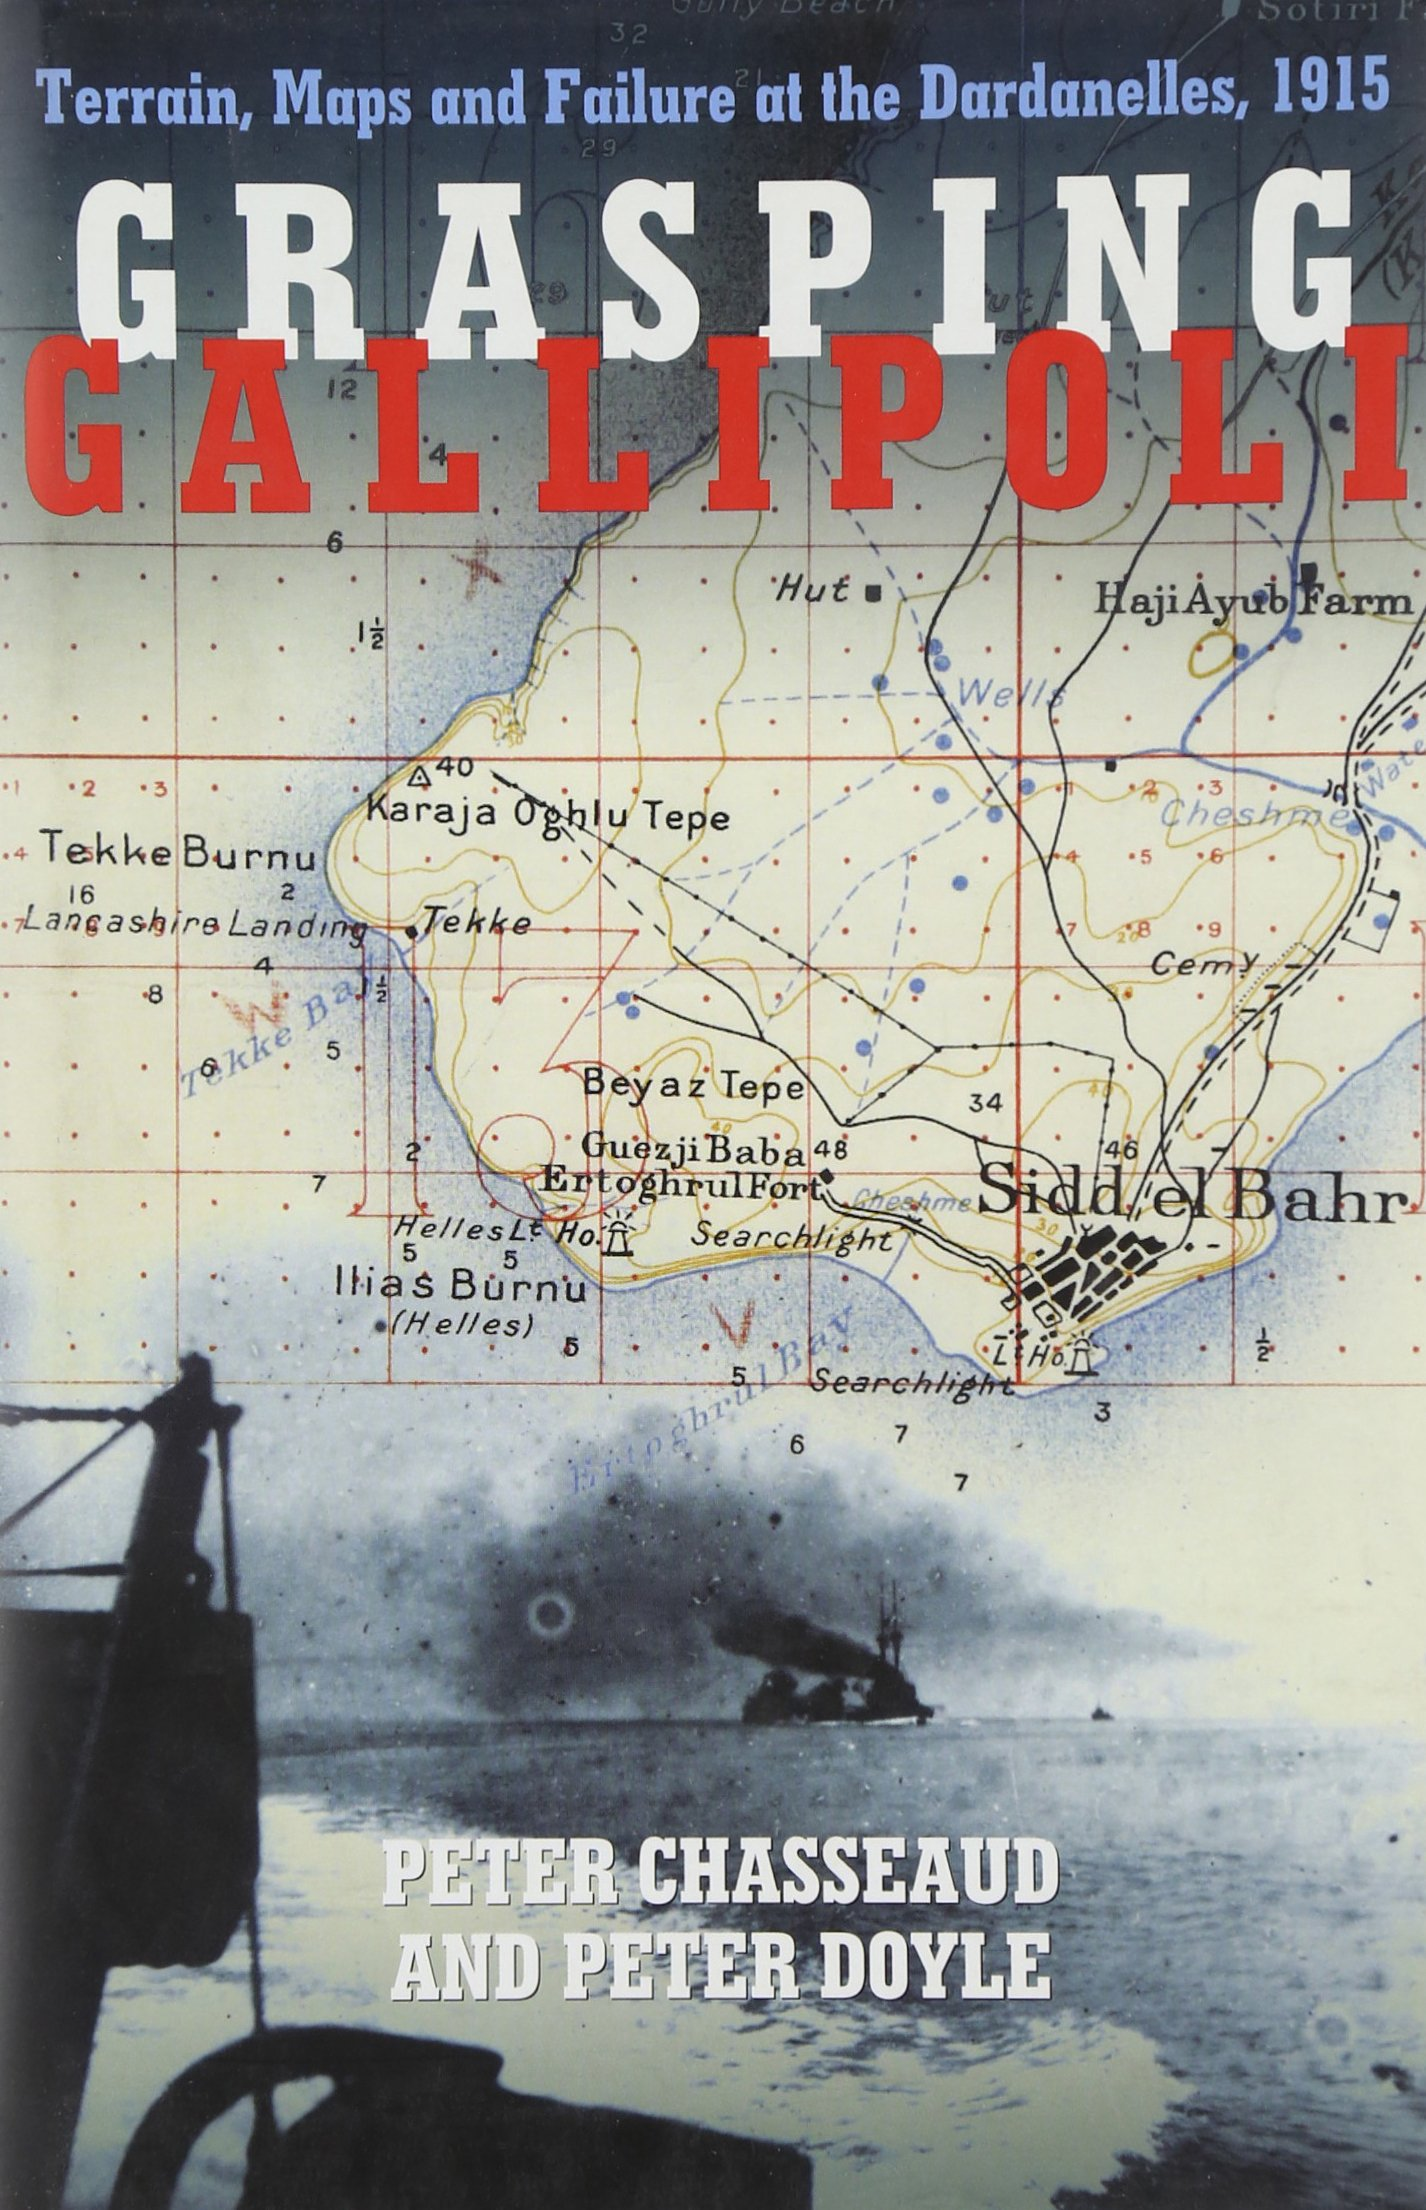 Download Grasping Gallipoli: Terrains, Maps and Failure at the Dardanelles, 1915 pdf